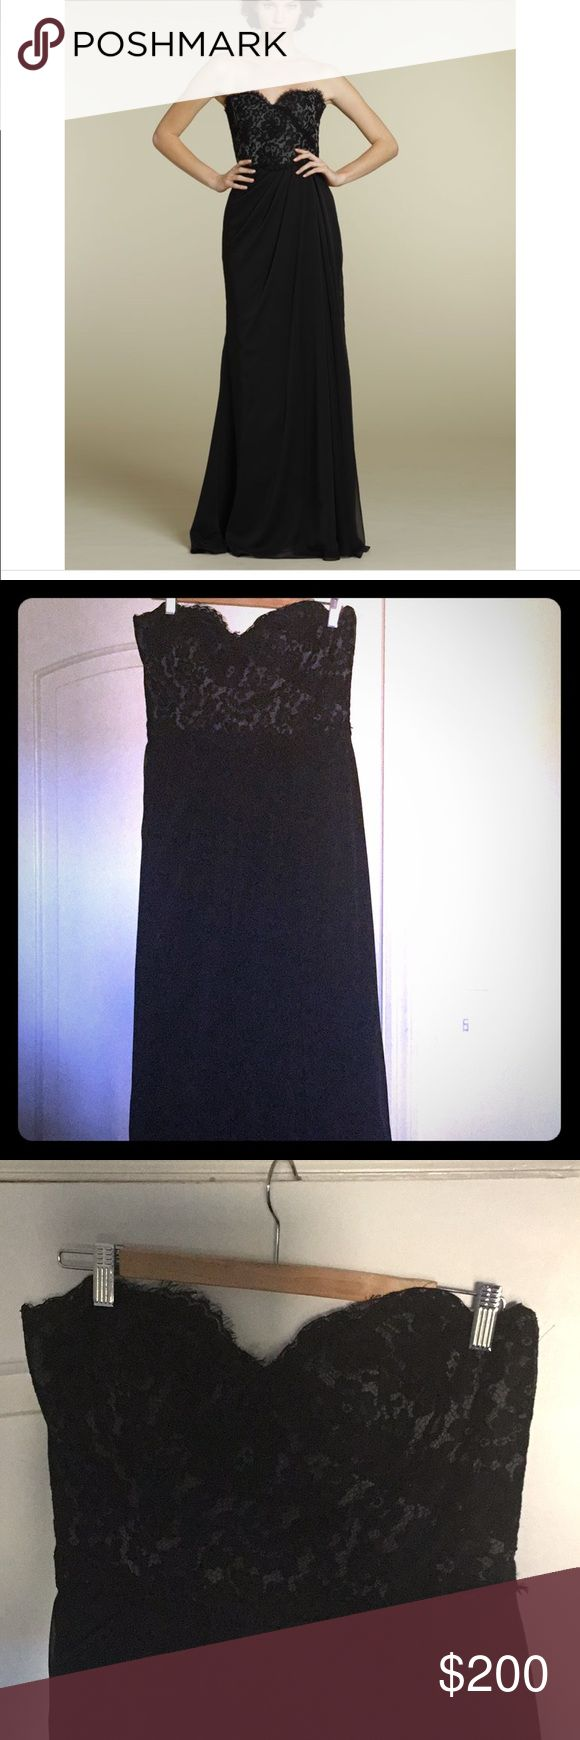 Jim Hjelm Occasions Black formal dress Black lace over chiffon dress. This is a size 16 but fits a modern 12. I have cups sewn in- I'm a 36 C. Beautiful gown for formal weddings as a guest of bridesmaid or prom! jim hjelm Dresses Strapless